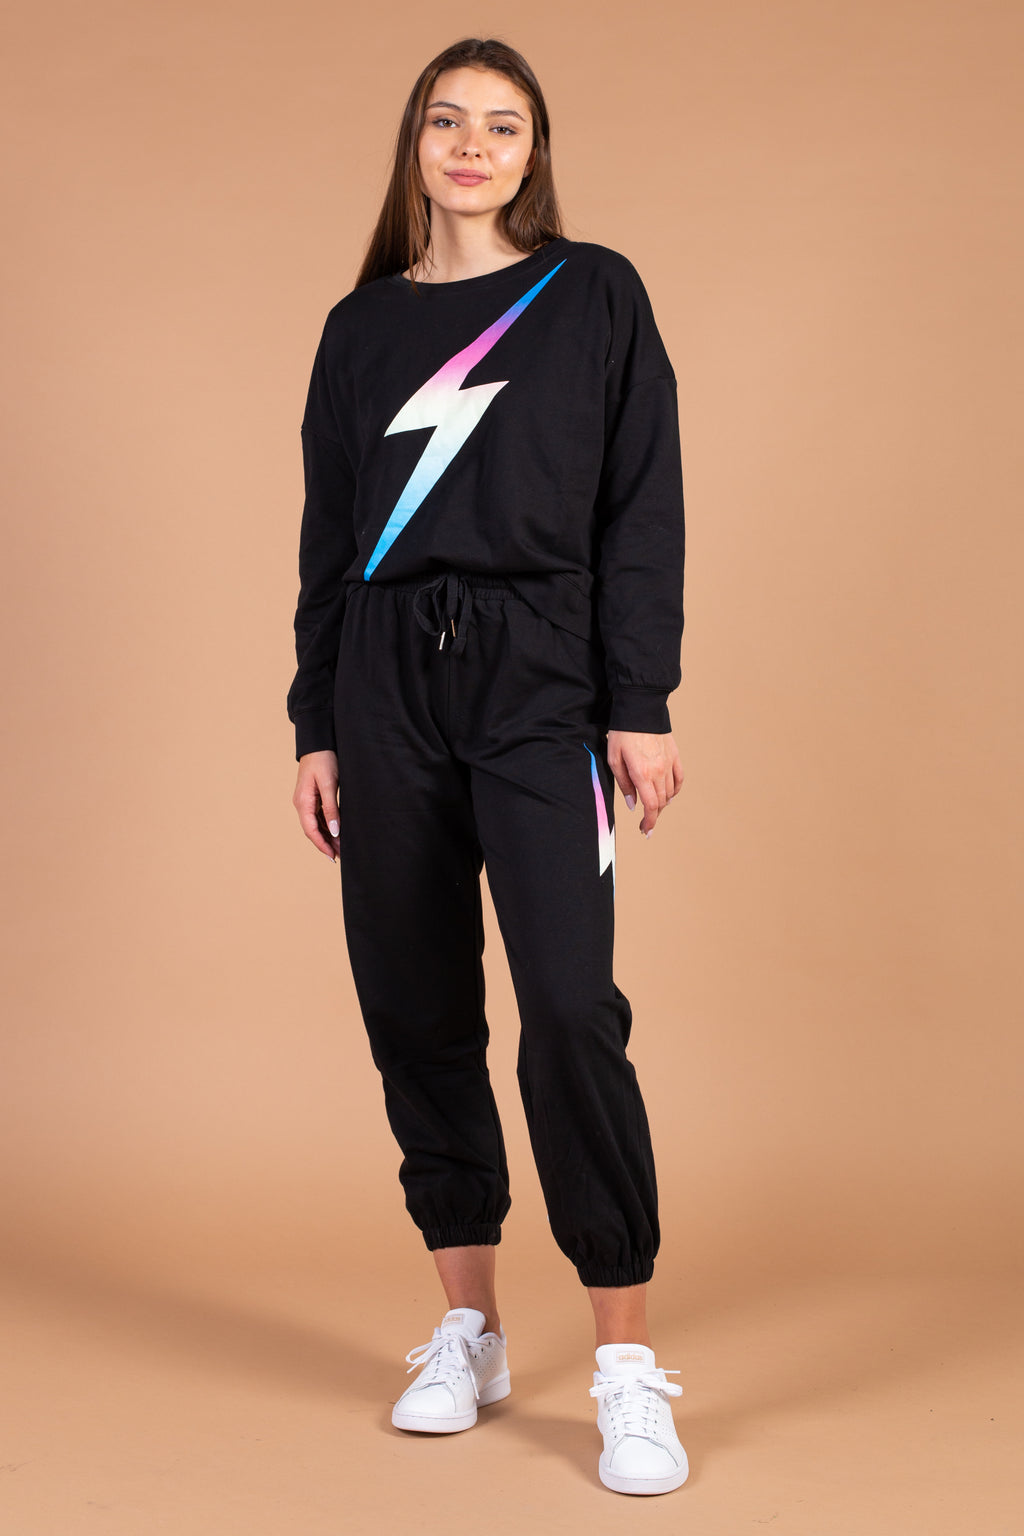 Rainbow Bolt Pullover Sweatshirt